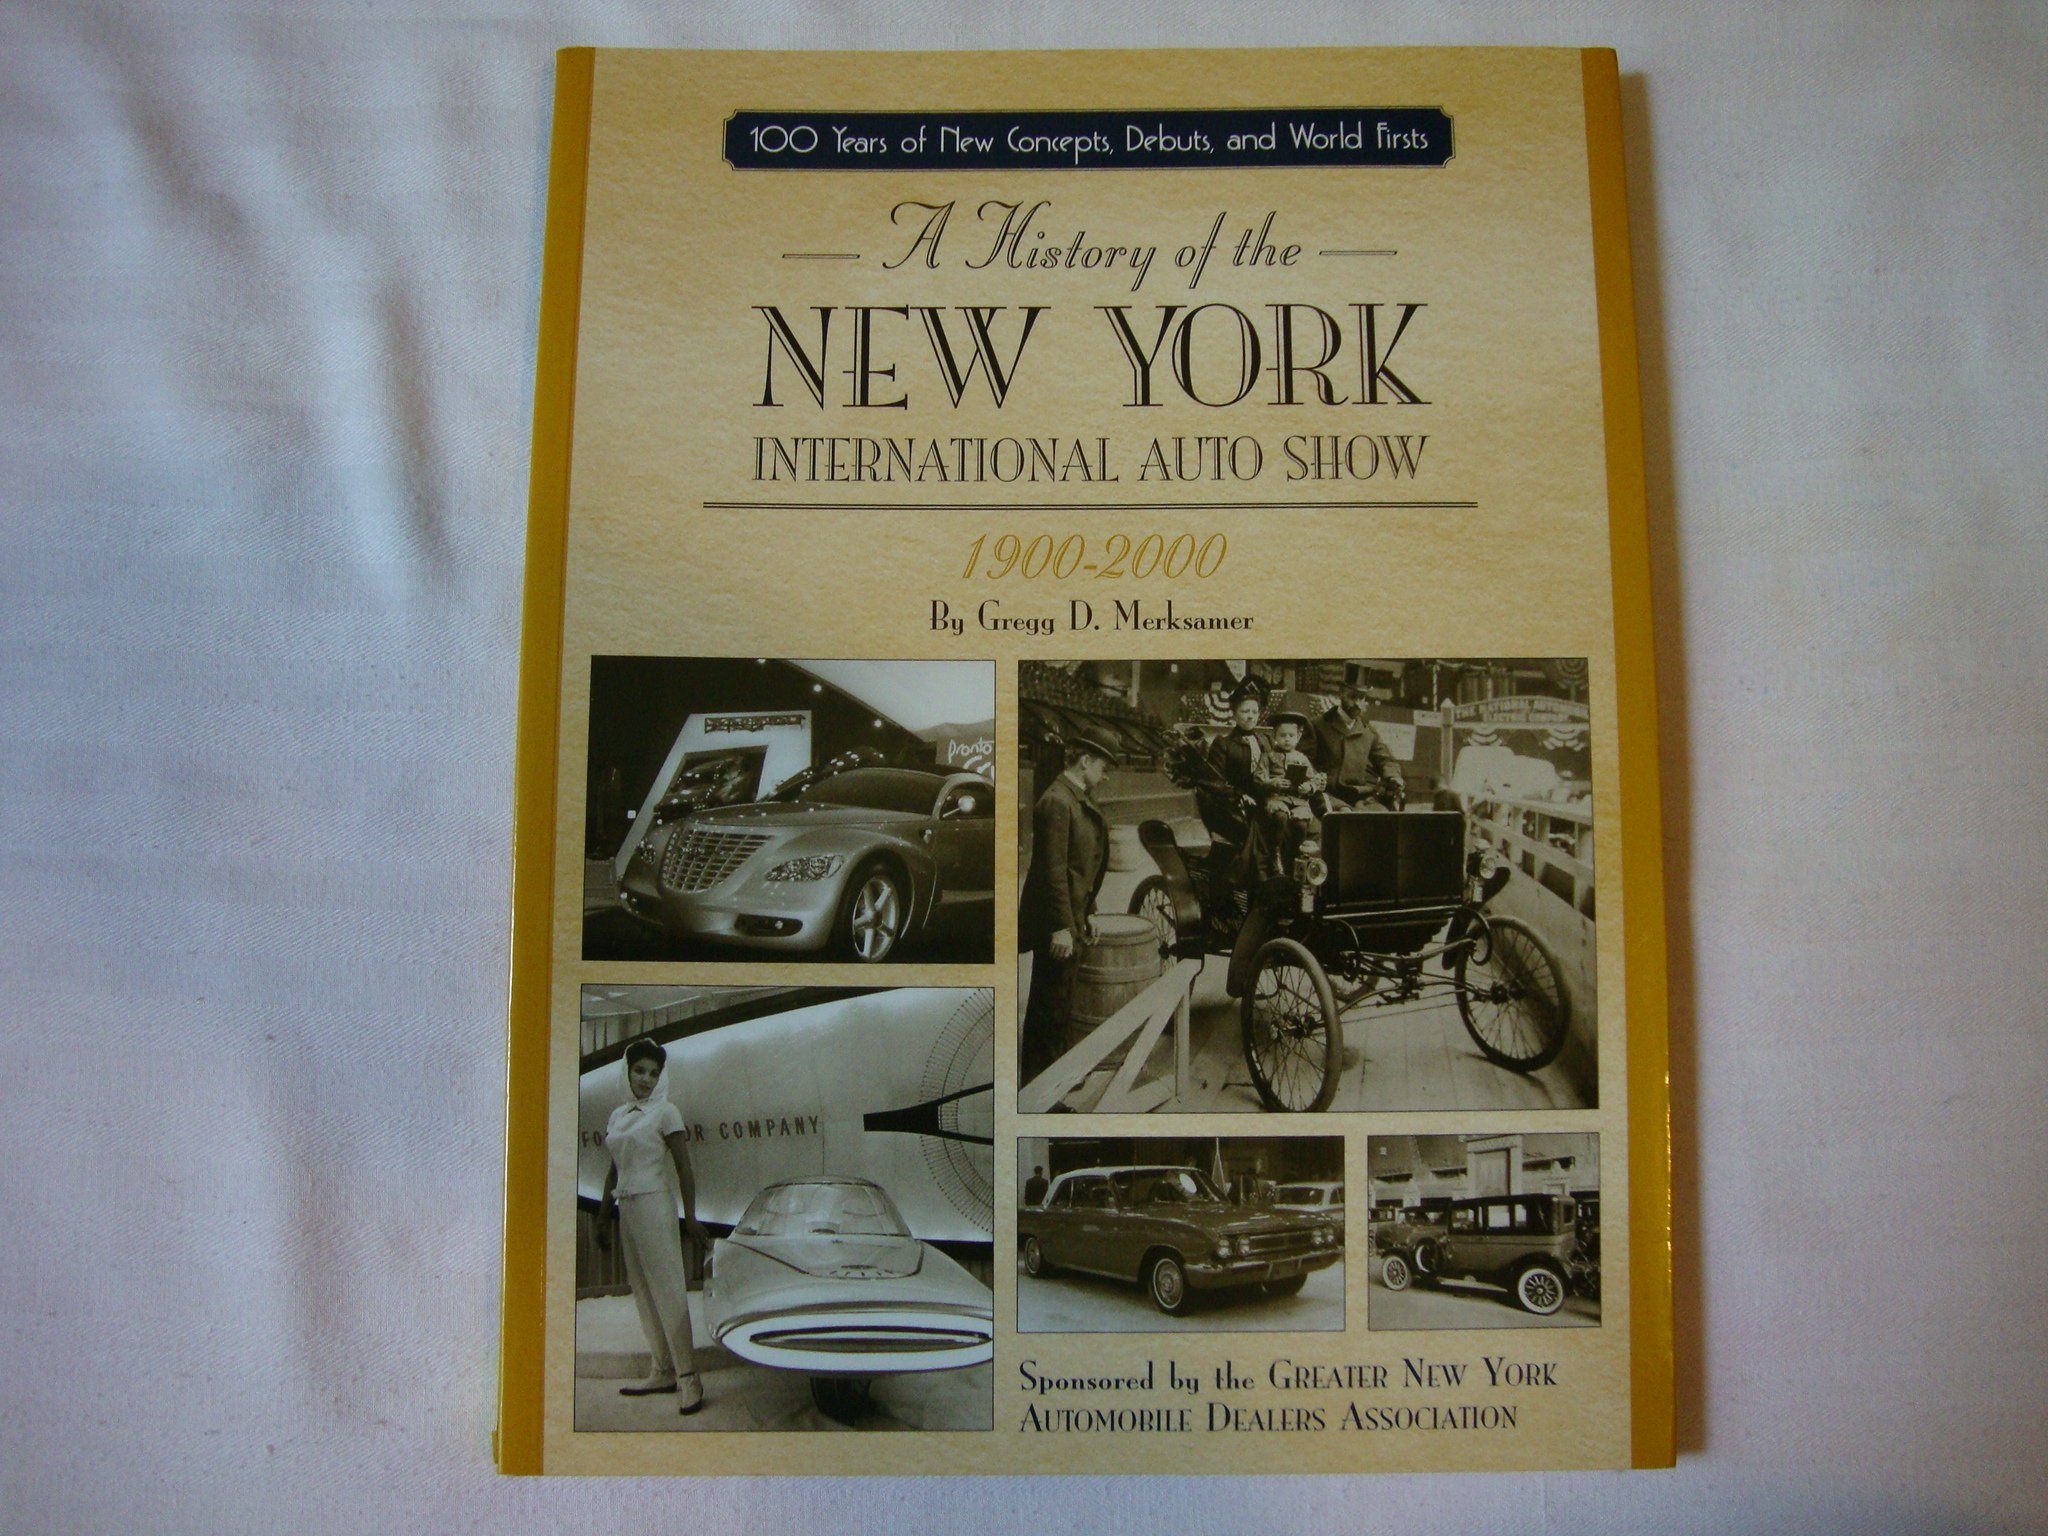 Download A history of the New York International Auto Show: 1900-2000 ; 100 years of new concepts, debuts, and world firsts ebook